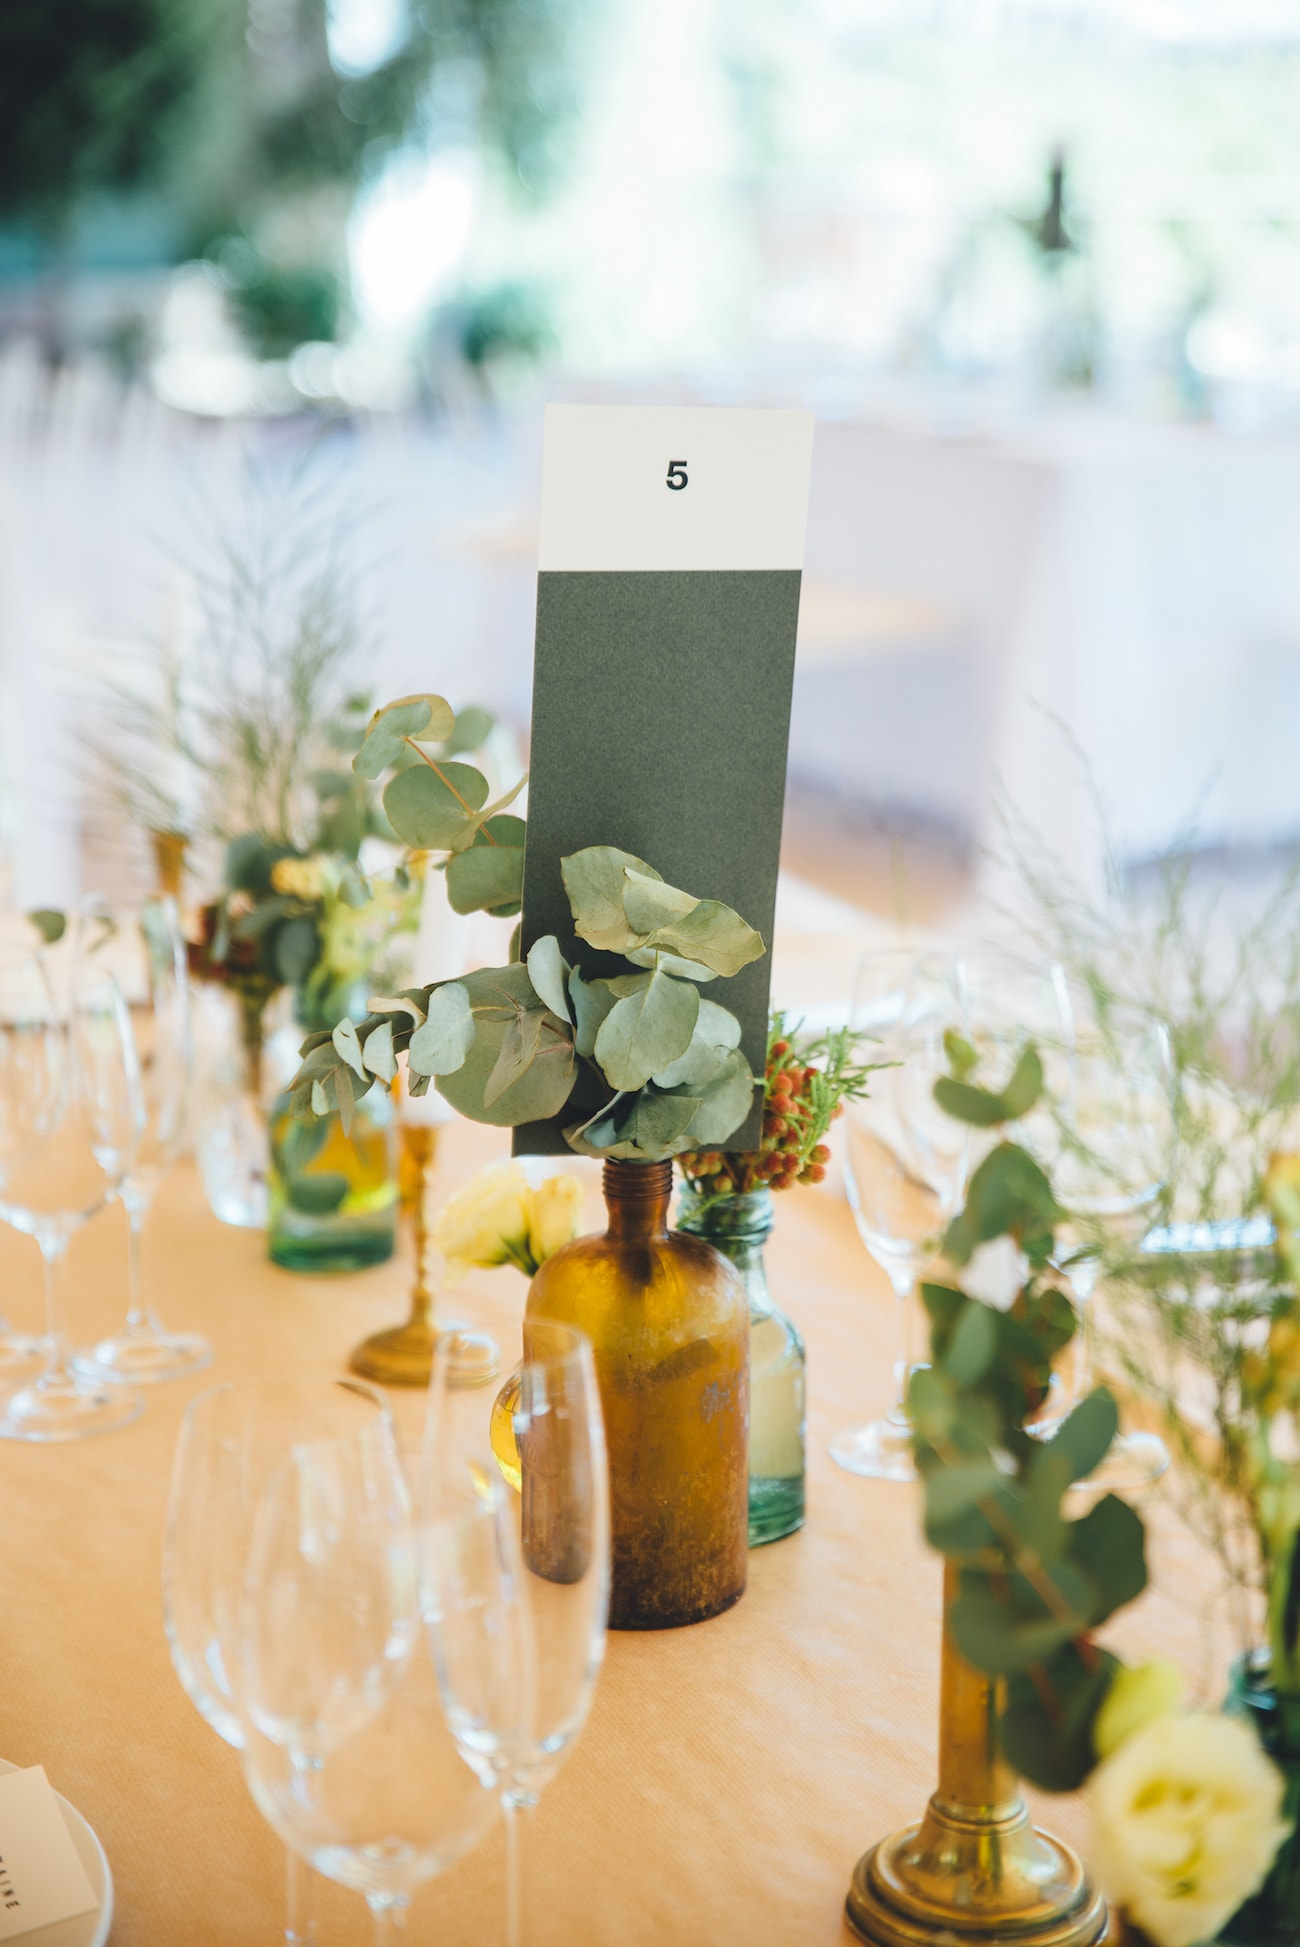 Paint Chip Table Number | Credit: Yeah Yeah Photography